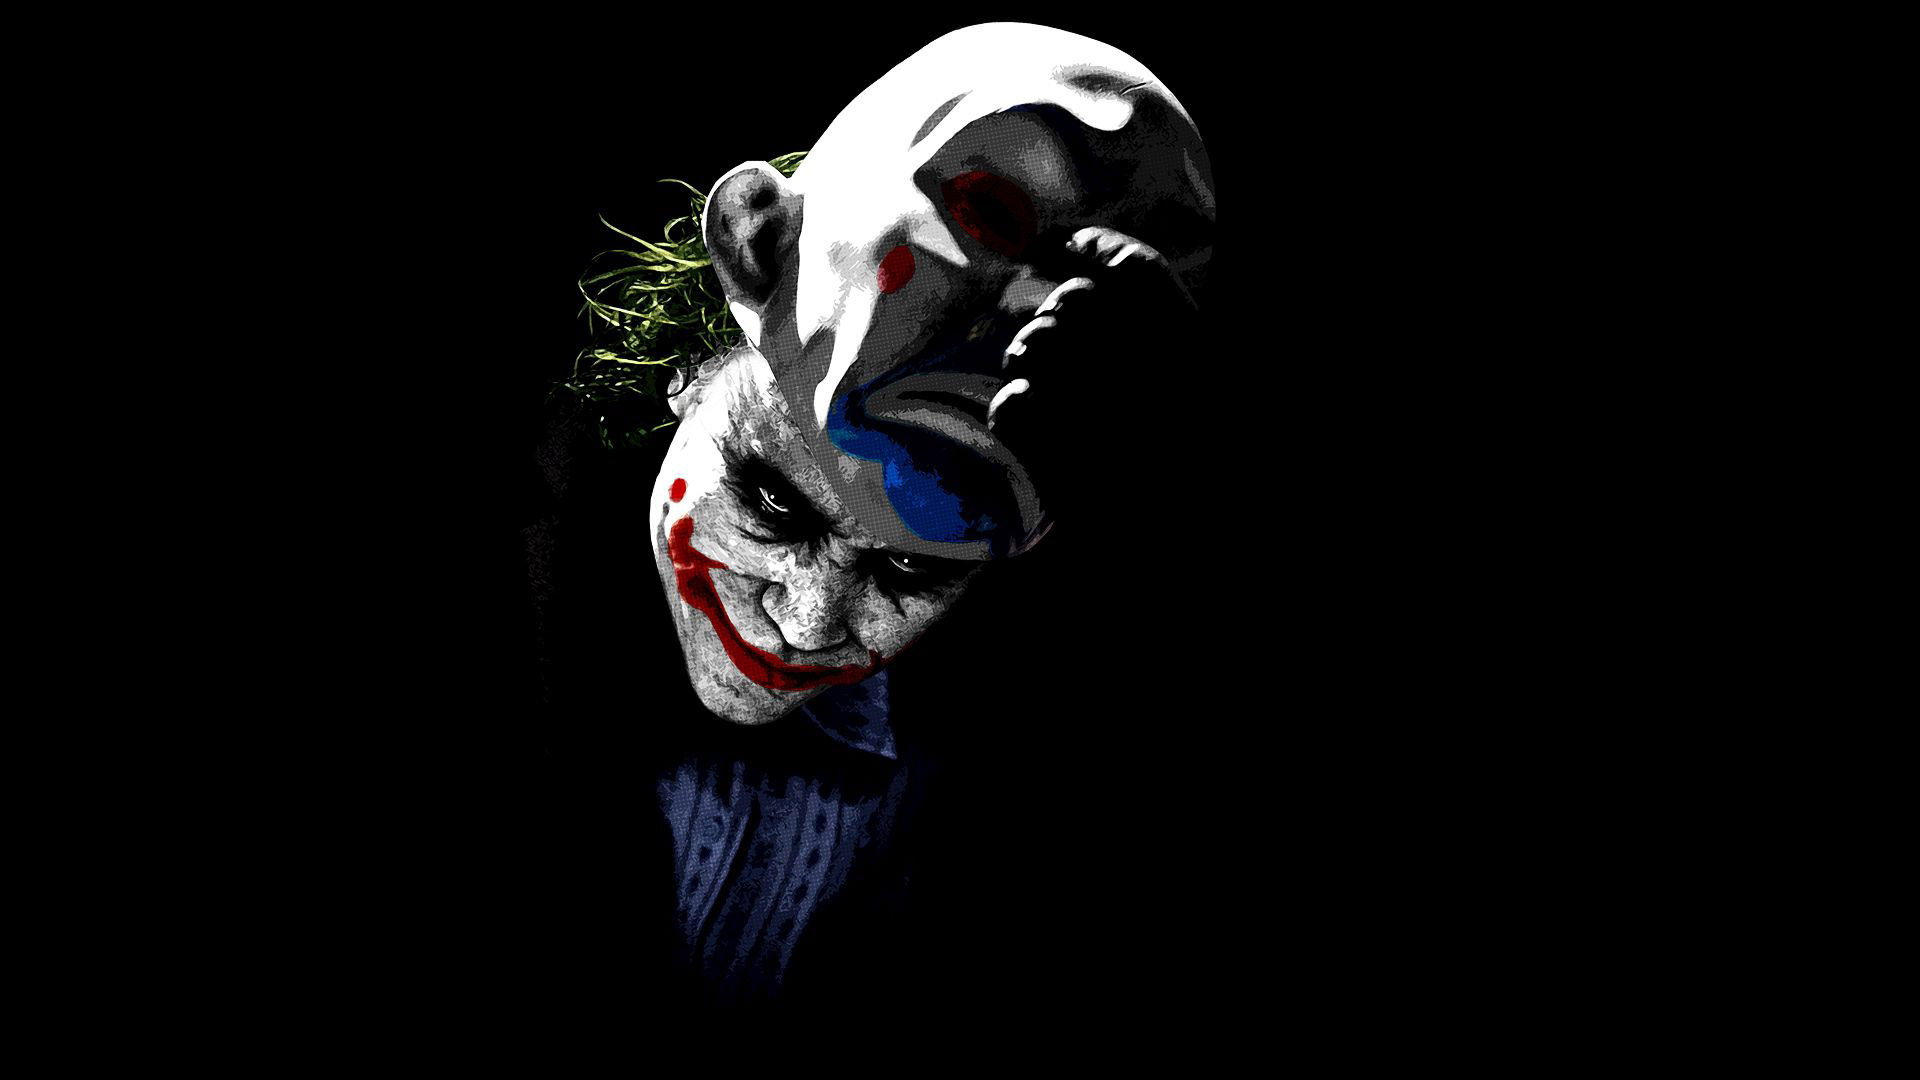 Joker The Dark Knight Wallpaper Wallpapersafari